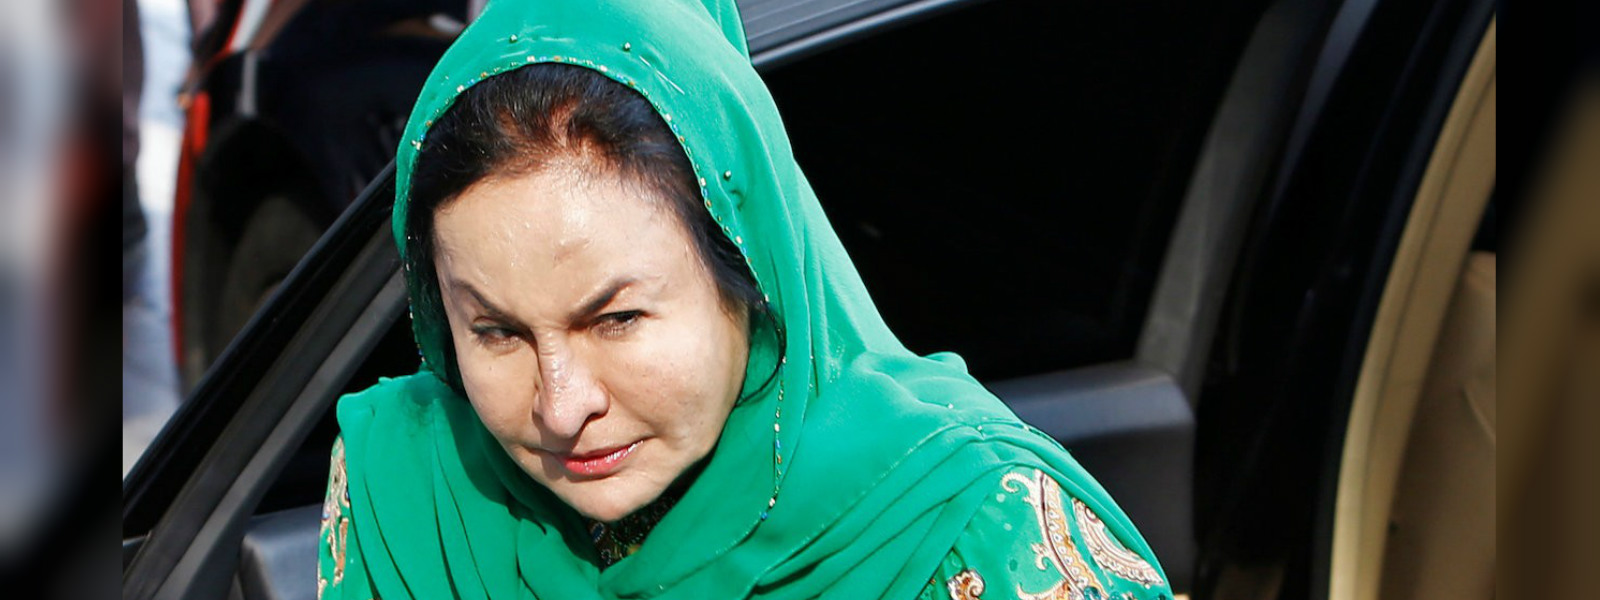 Wife of former Malaysian PM Najib Razak arrives for questioning at anti-graft agency